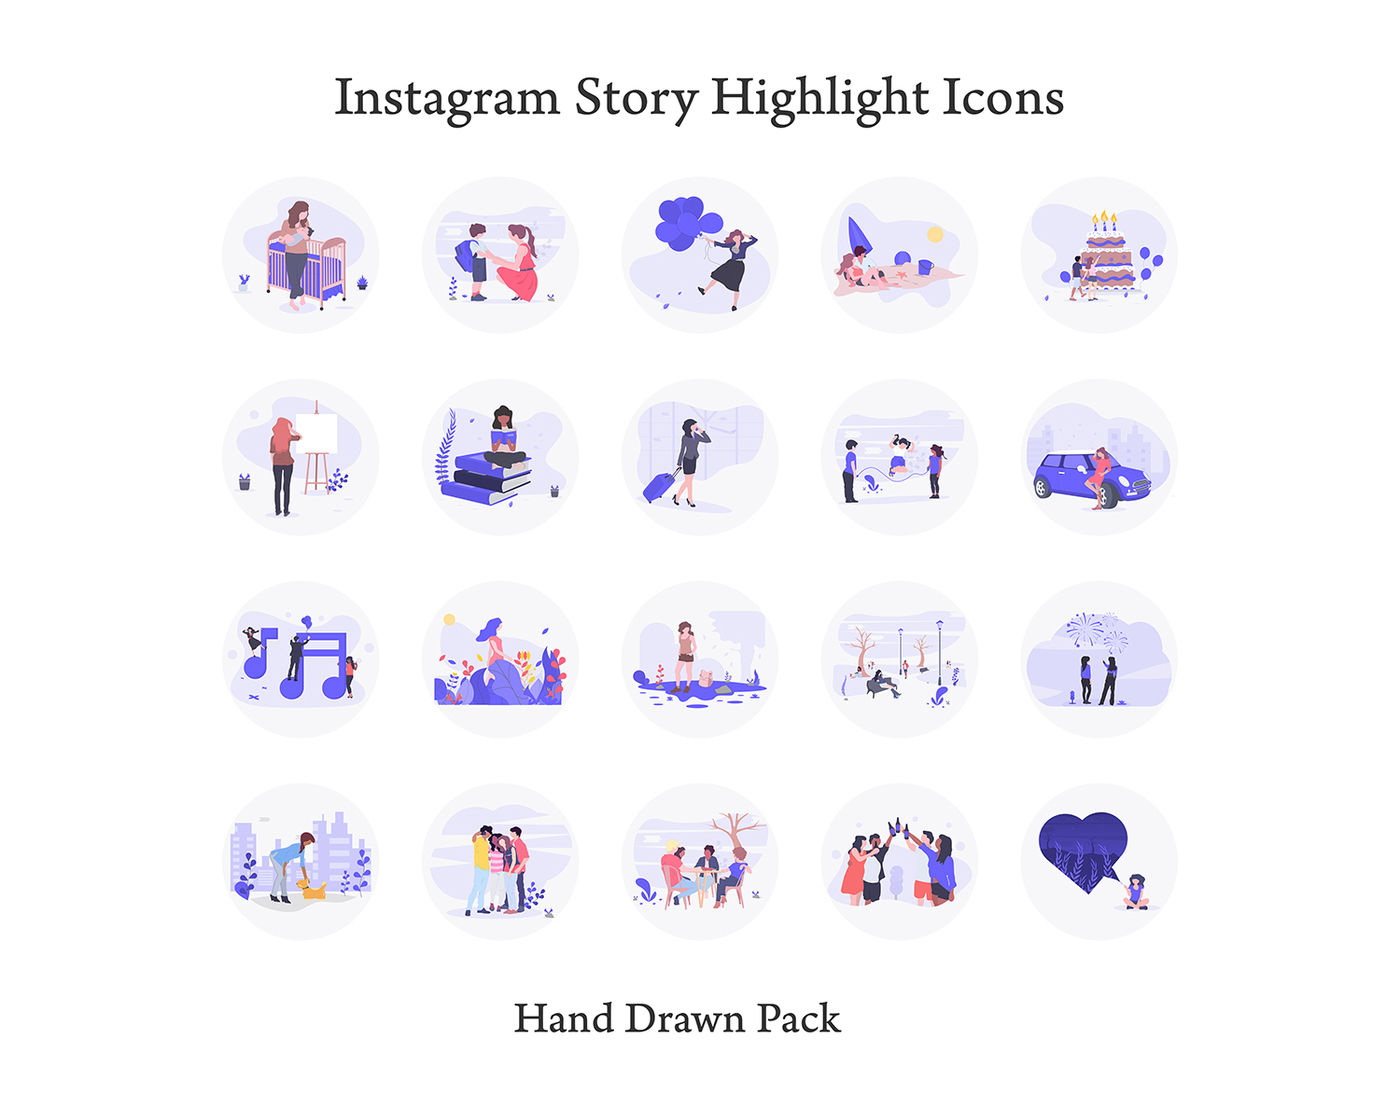 Instagram Story Highlight Icons By North Sea Studio